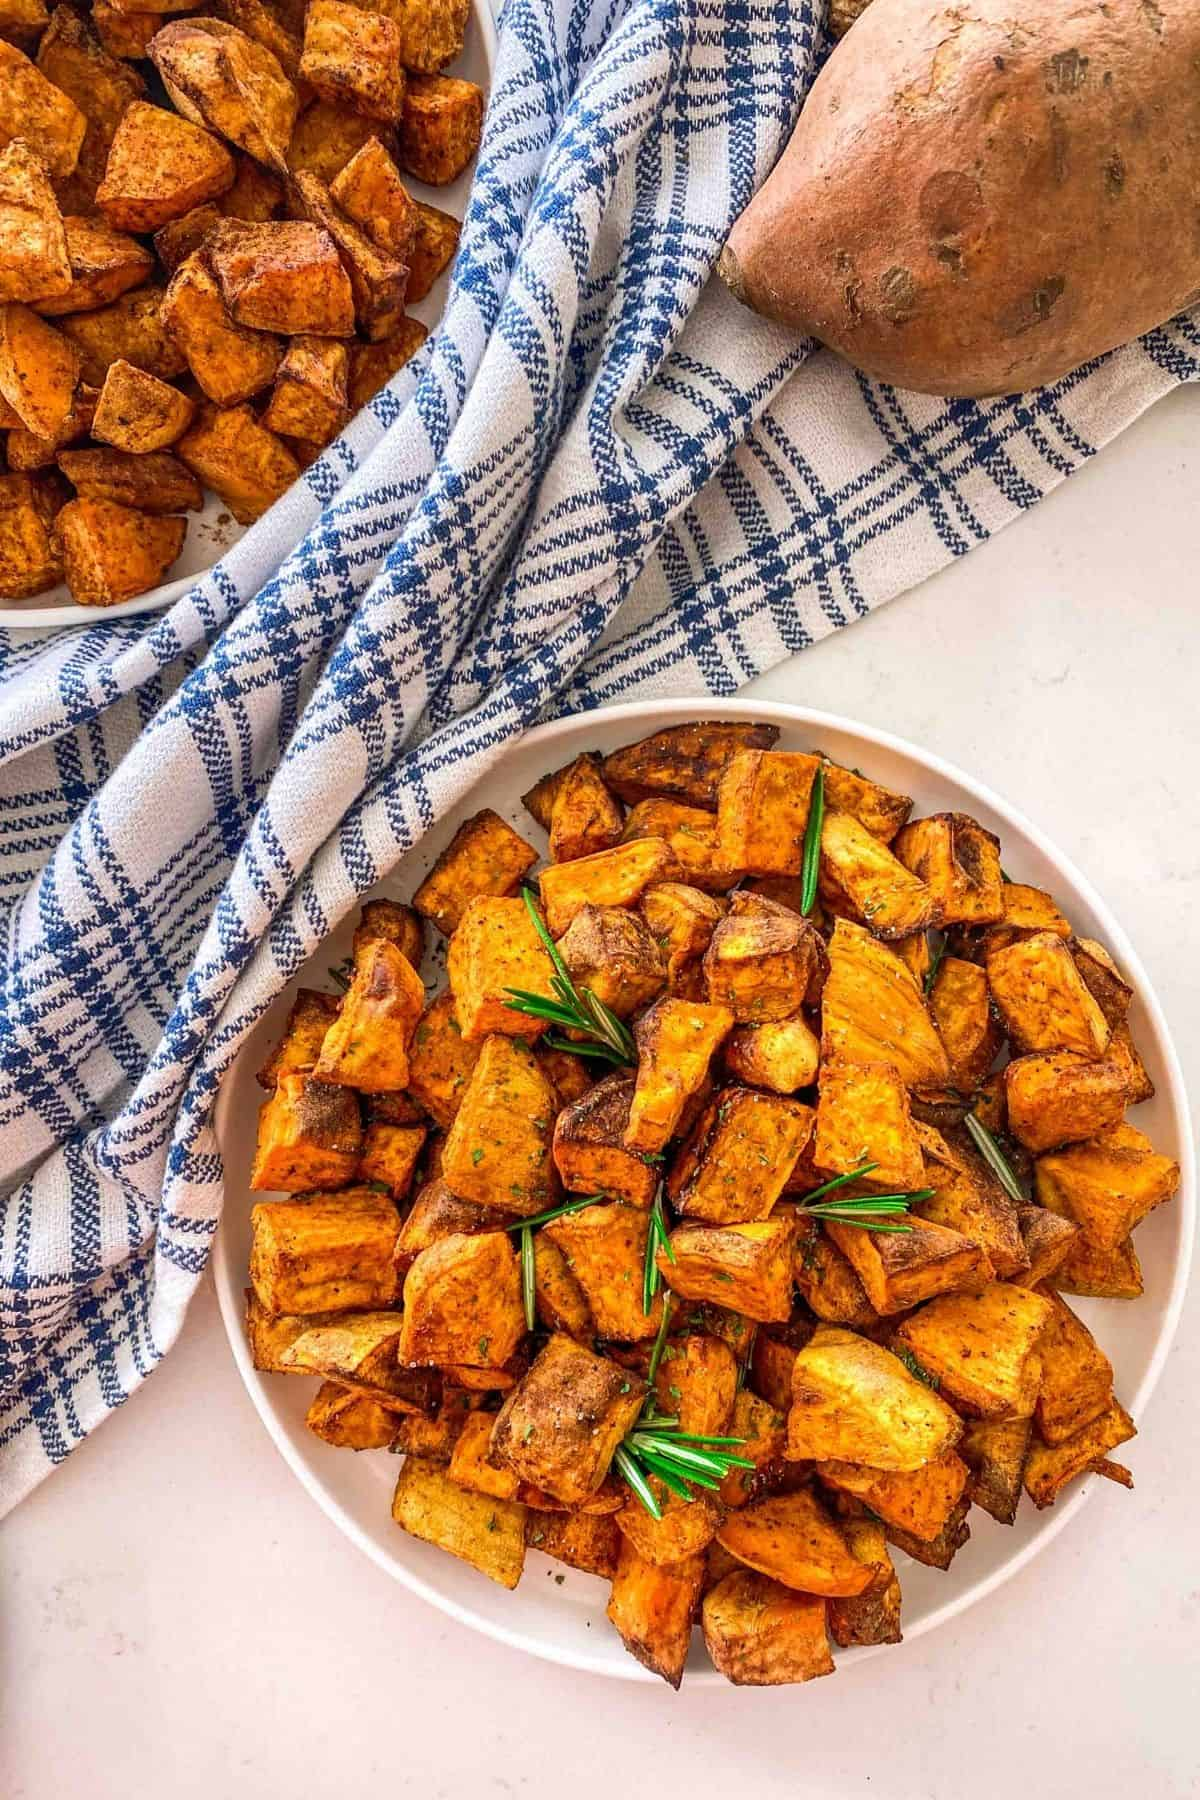 Two plates of sweet potato cubes with rosemary garnish.